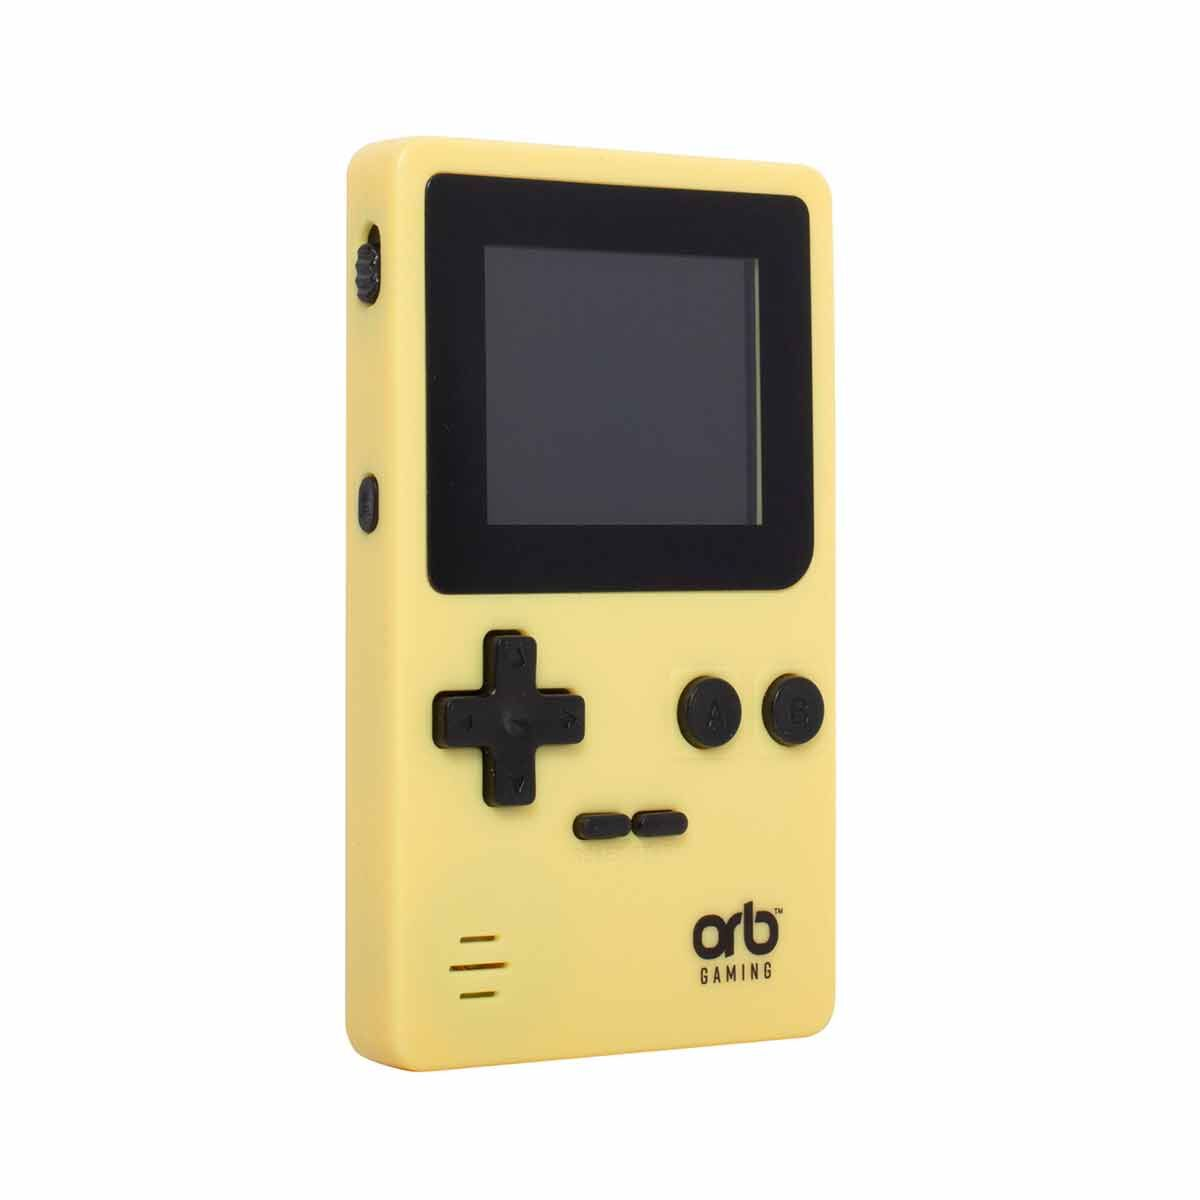 Retro Handheld Arcade Game Console Yellow/Black